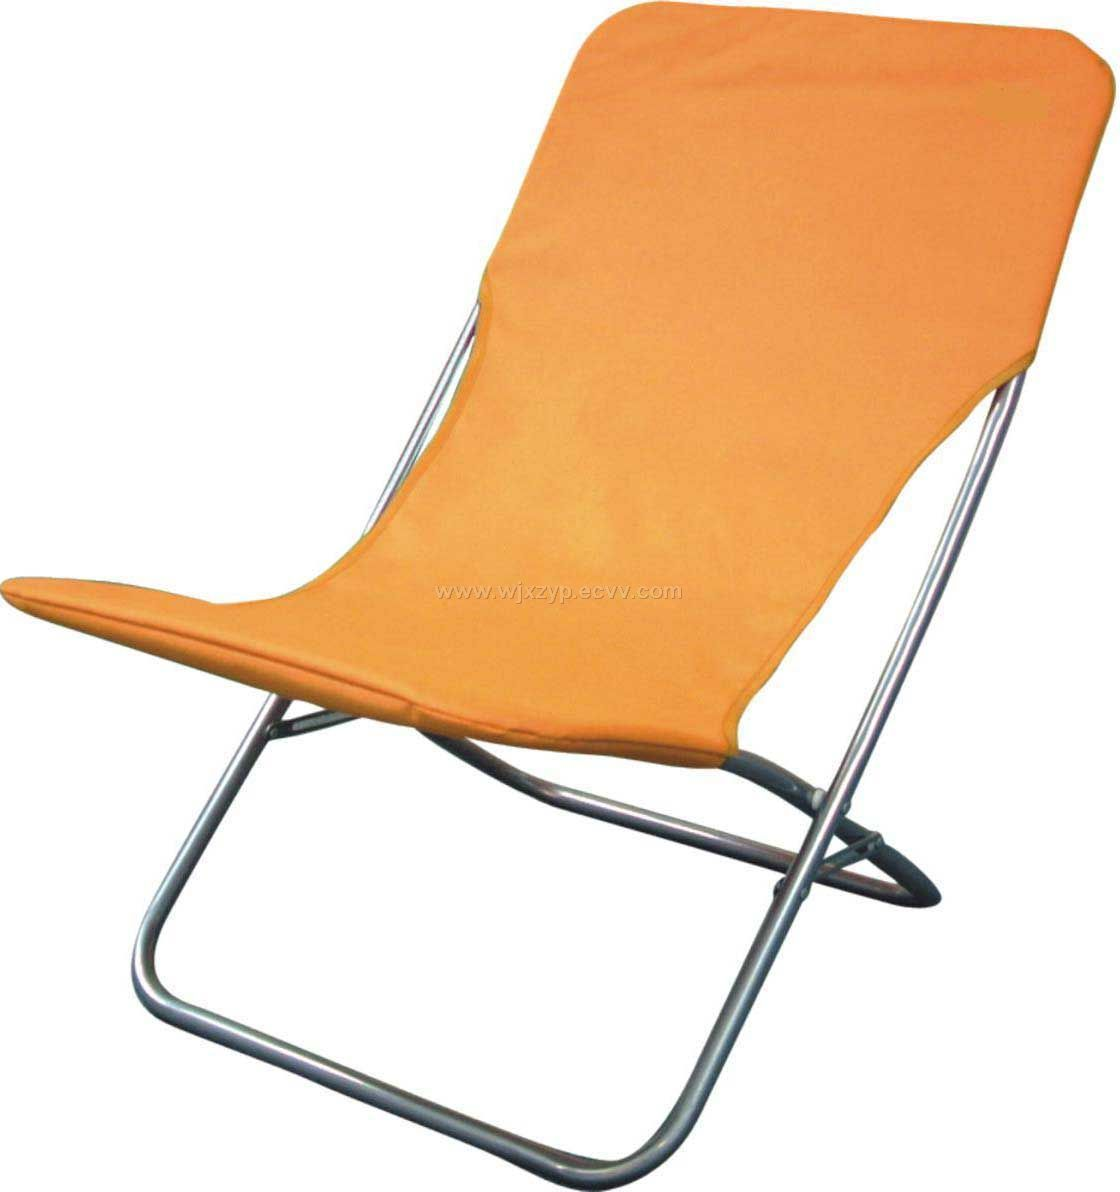 Foldable Aluminum Sports Chair beach chair purchasing, souring agent | ECVV.com ...